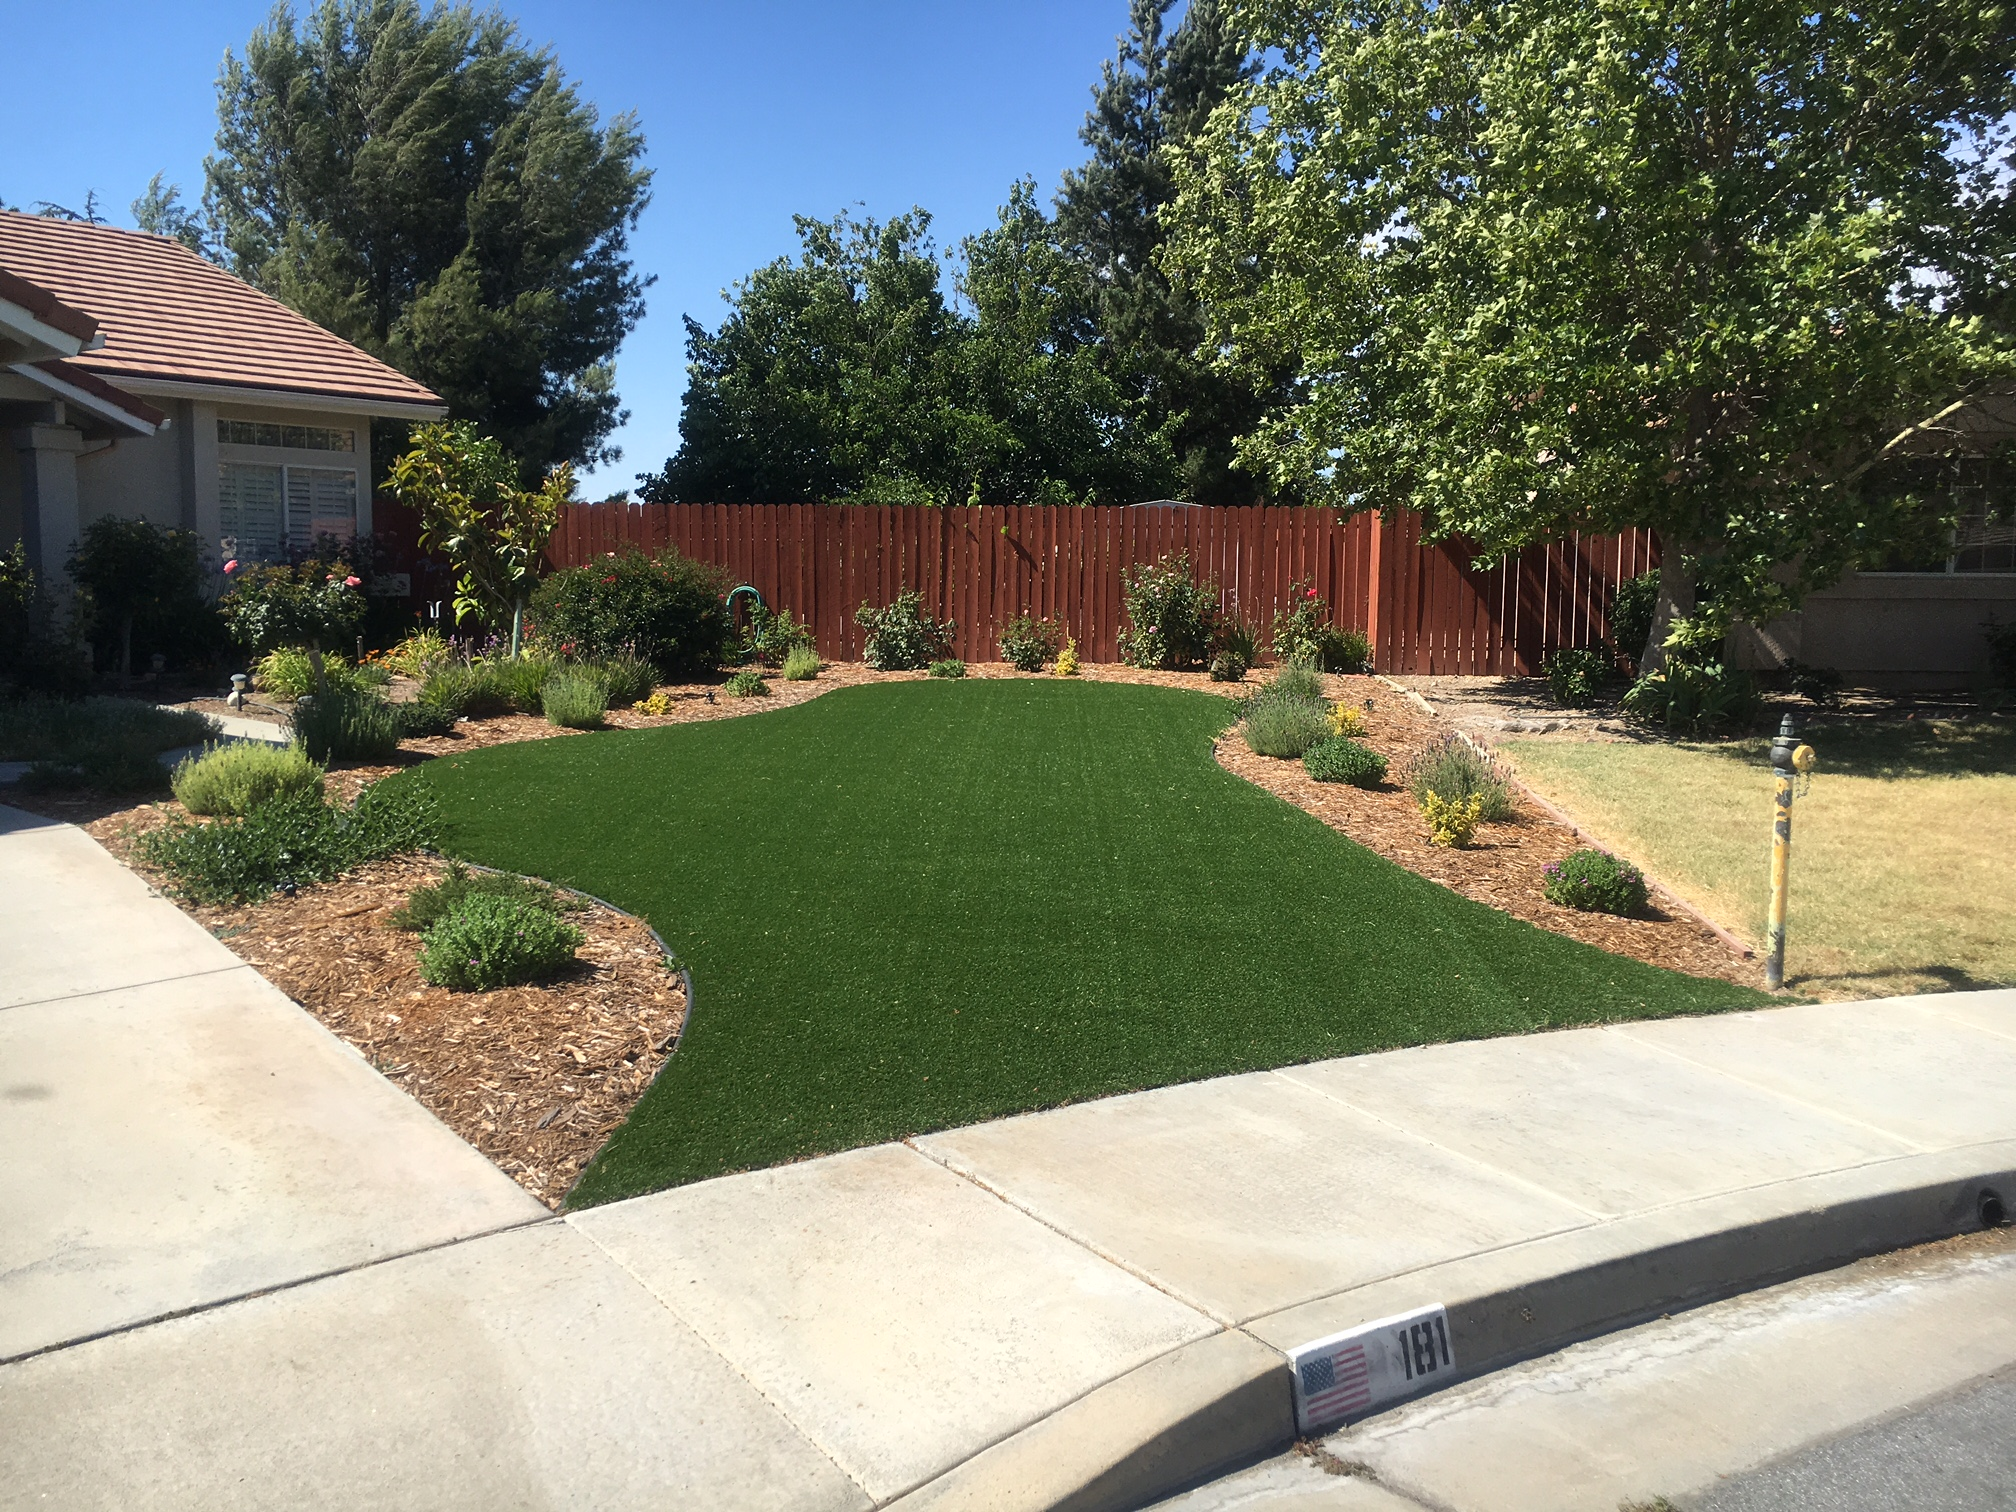 Synthetic Grounds For Your Home Commercial Or Residential Property In Paso Robles Backyardsteps Wright Landscape